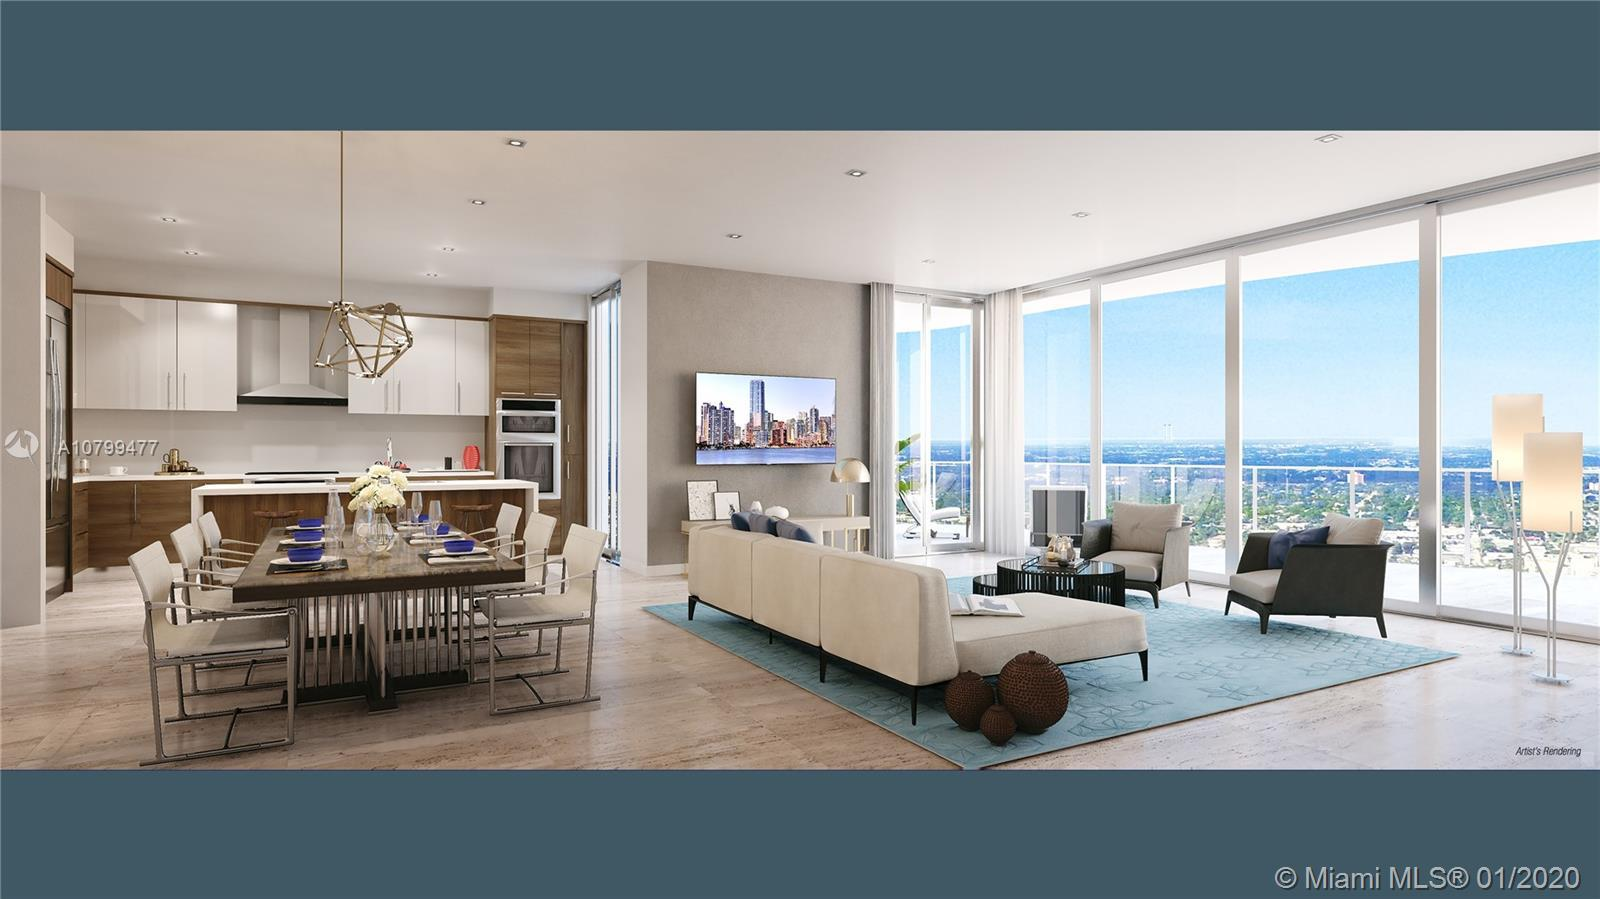 One of only  3 top floor Penthouses in downtown's newest and most coveted building. Delivered fully